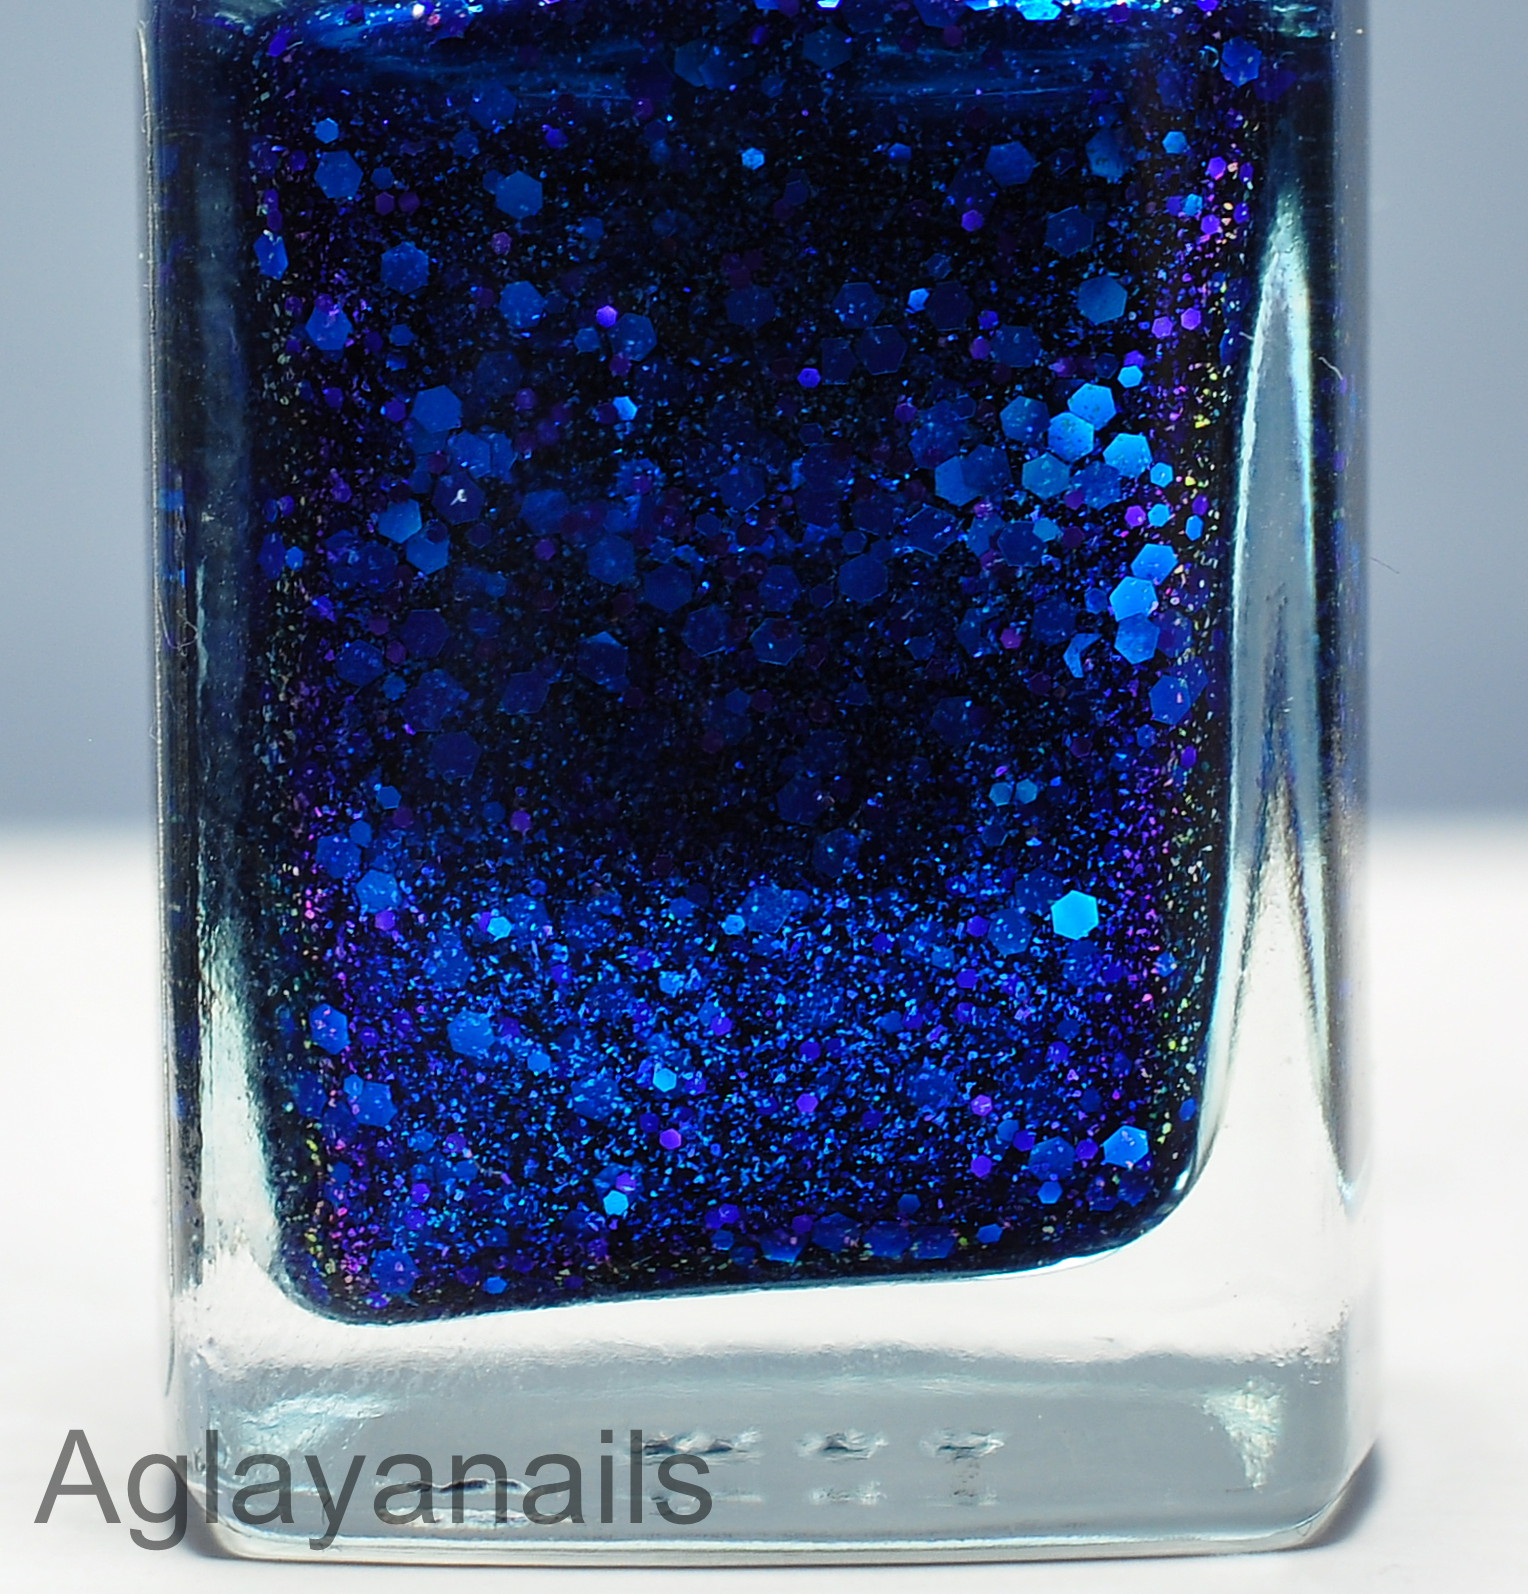 Aglayanails 2018 blueprint is a royal blue jelly with blue hex glitters in various sizes plus some purple shimmer i used three coats that were wearable malvernweather Choice Image